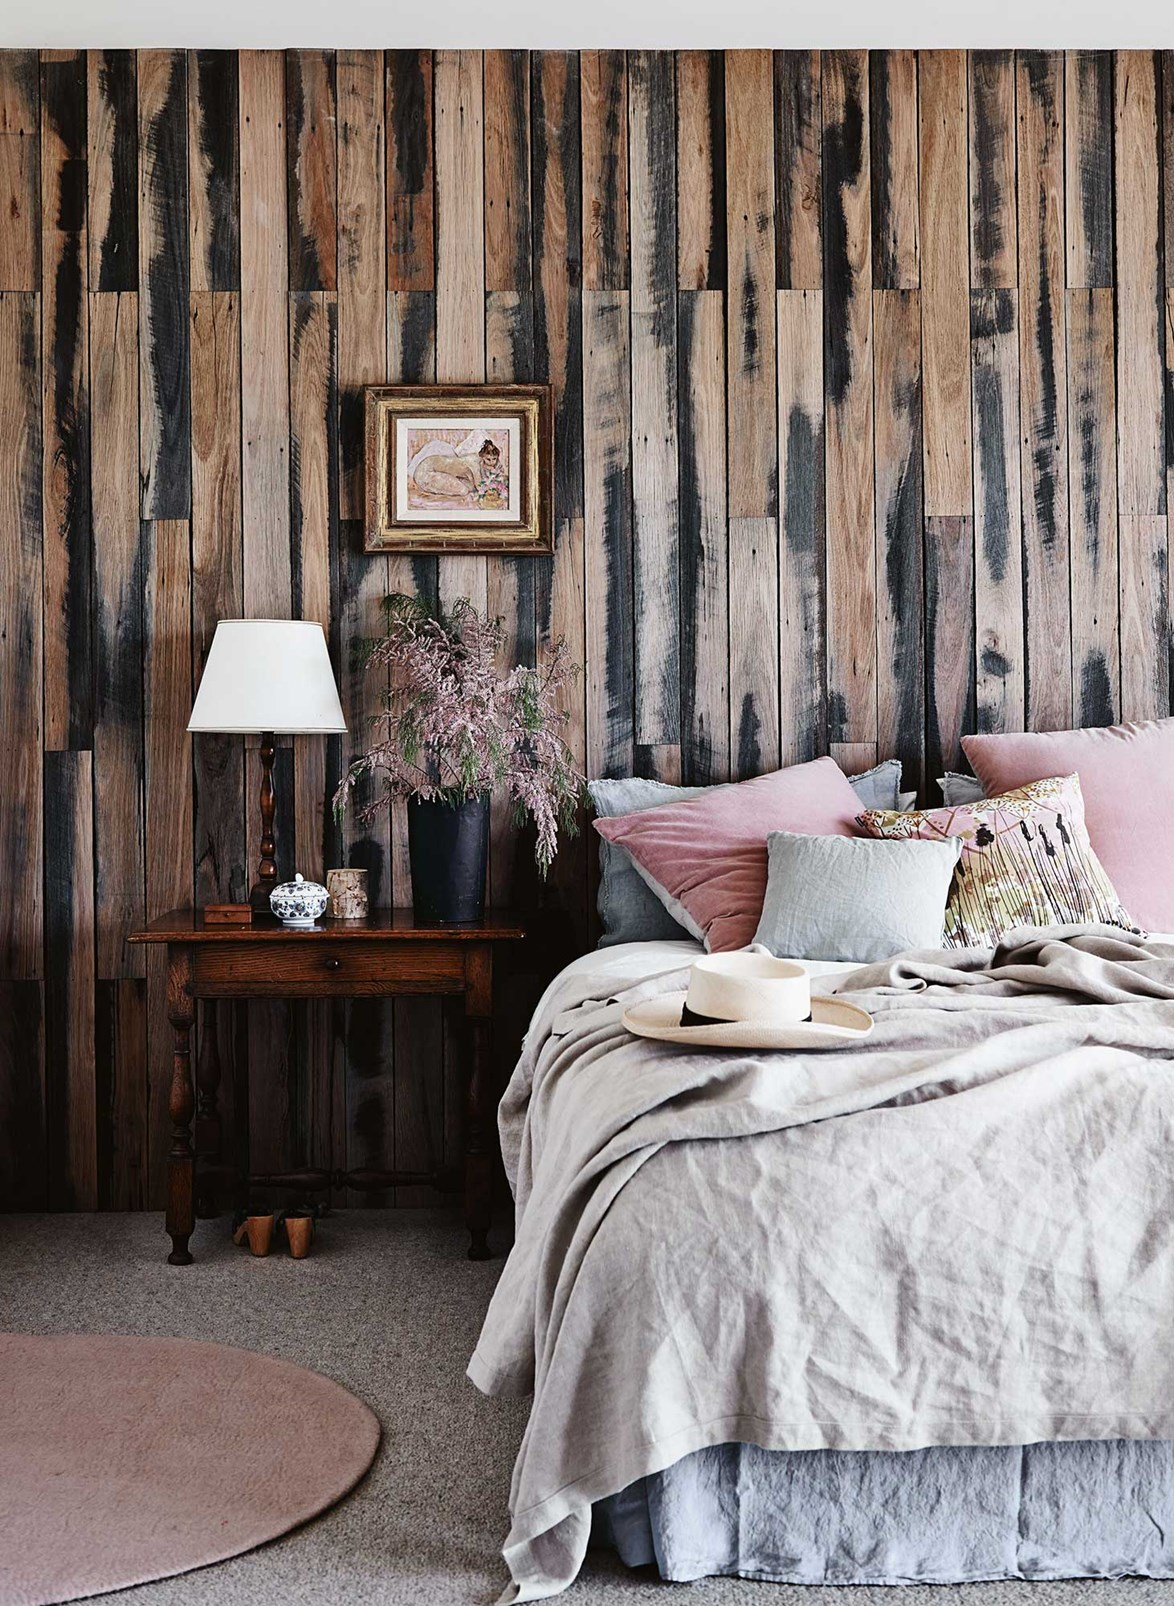 """In the master bedroom of this [newly-built home in Freshwater Creek](https://www.homestolove.com.au/designer-dream-home-in-freshwater-creek-victoria-13657